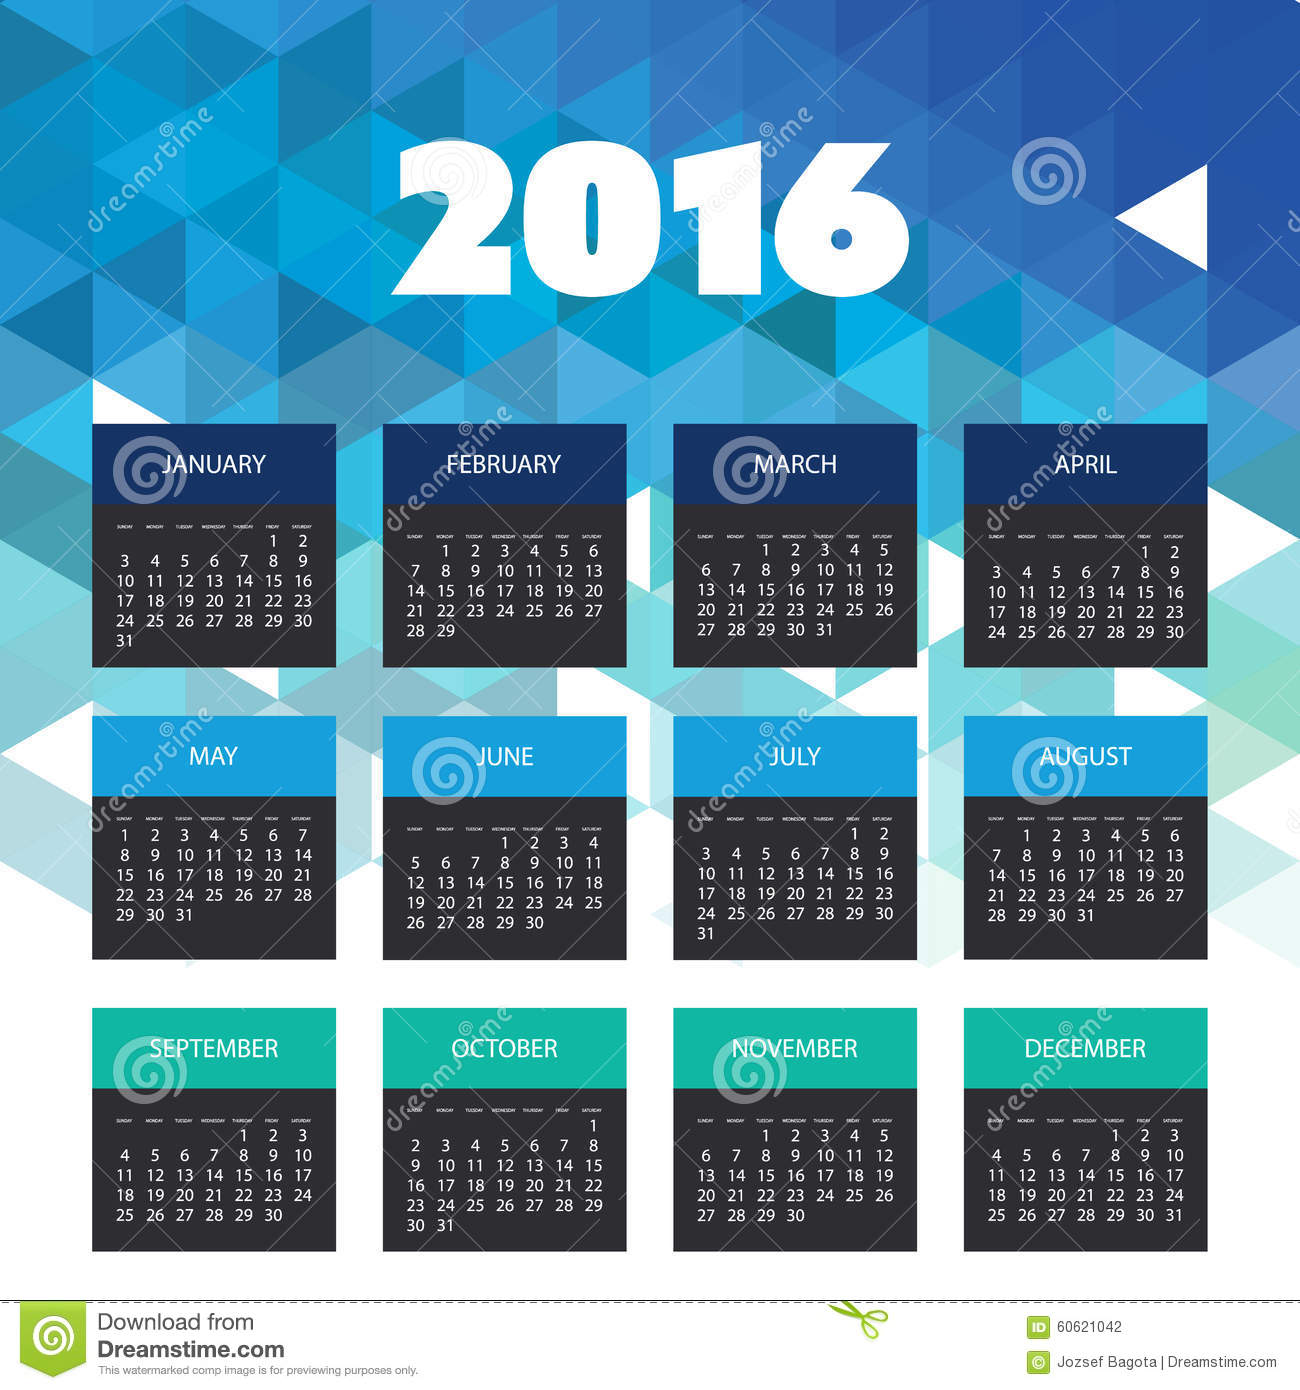 Cover Calendar Design Vector : Calendar with blue triangle geometric background